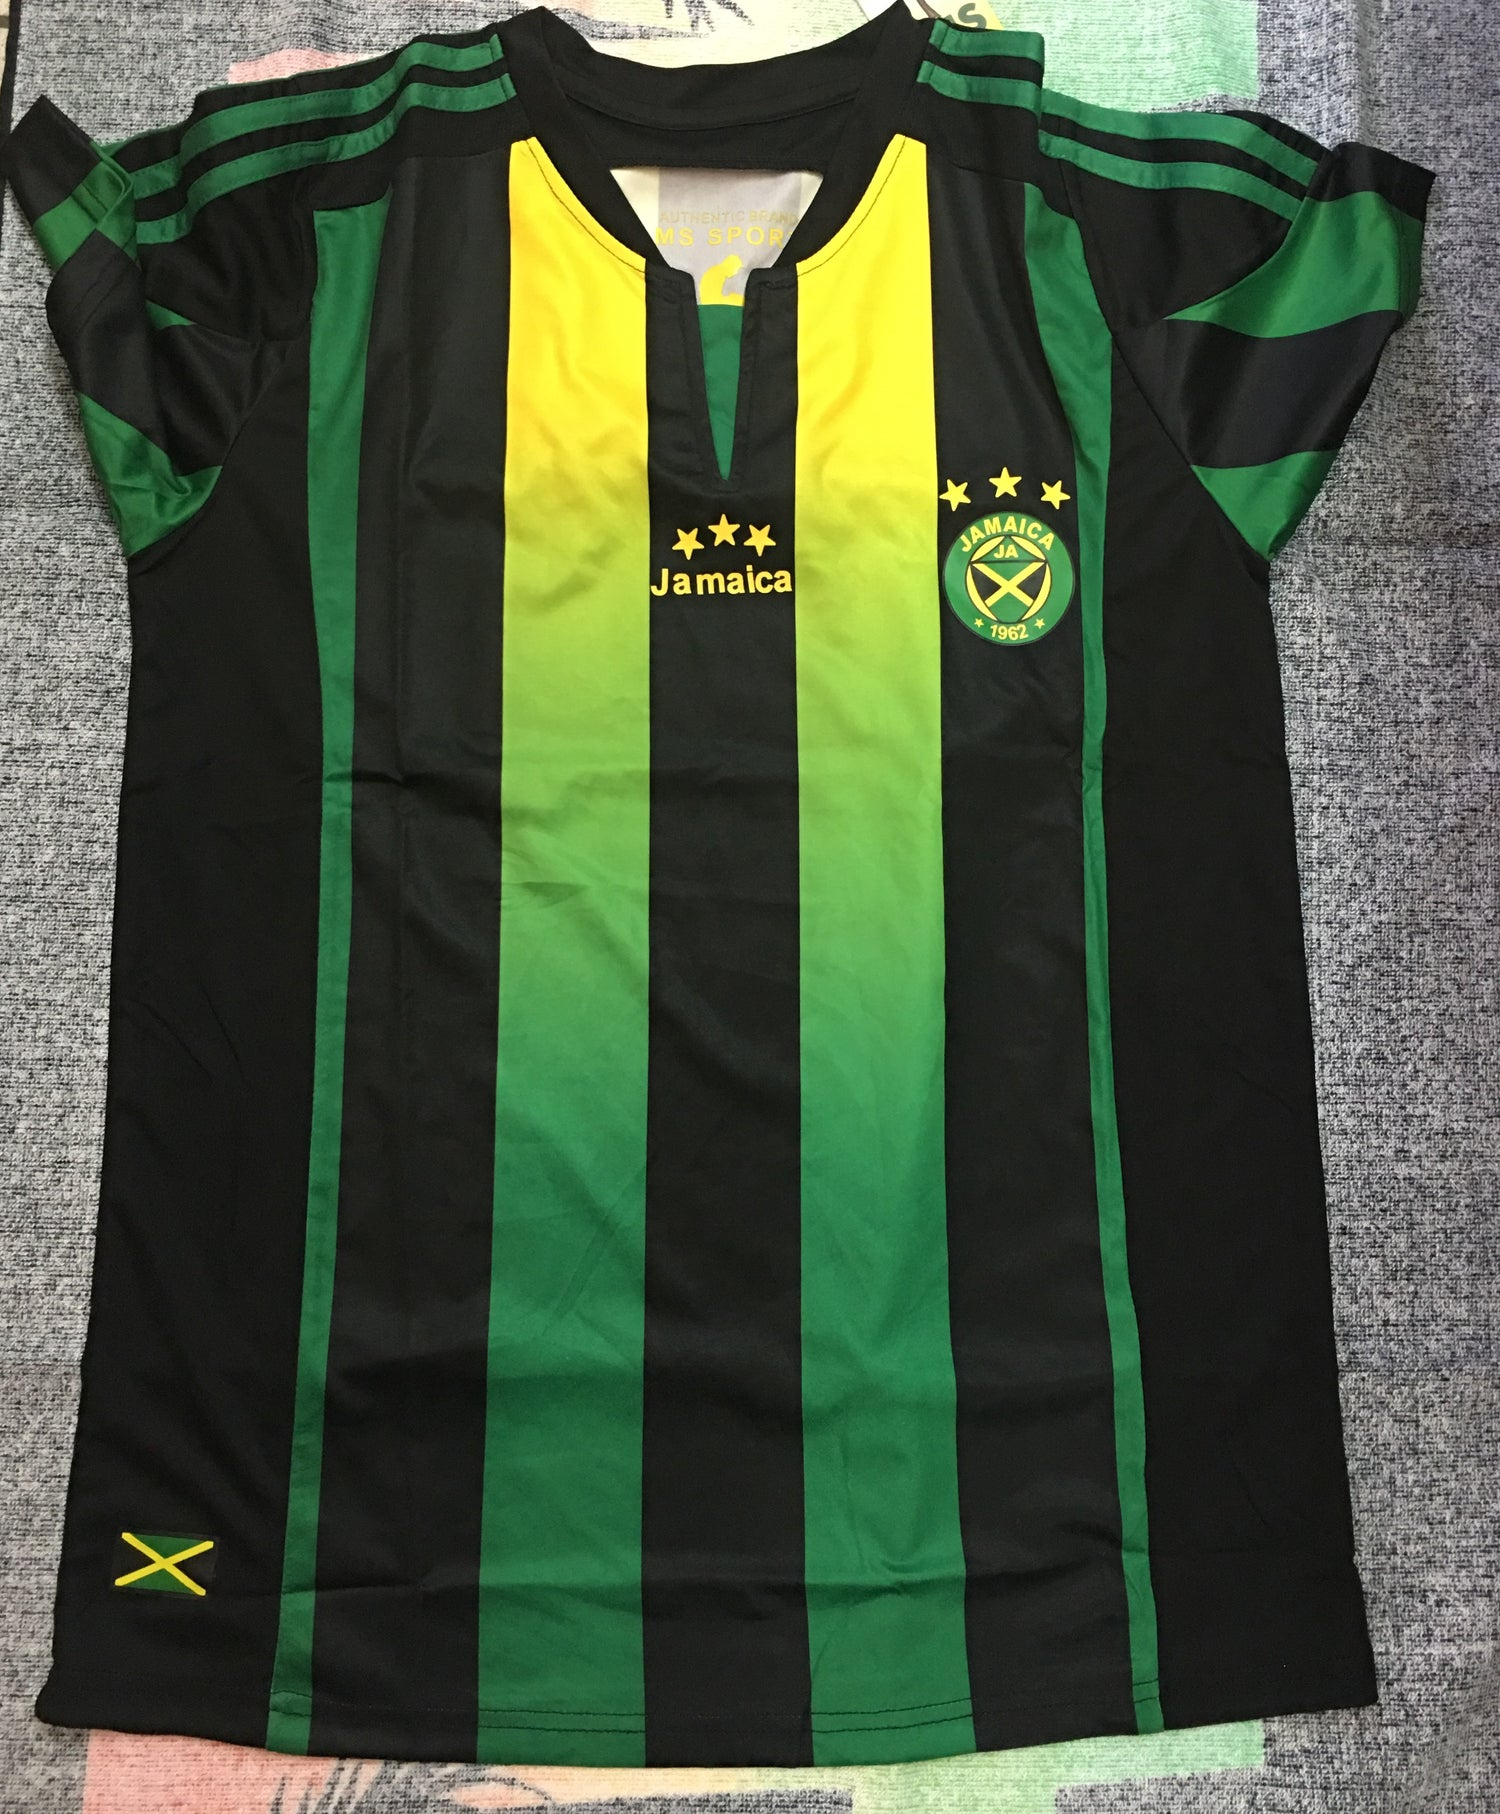 97cffeff750 Image of Black Jamaica Football Jersey